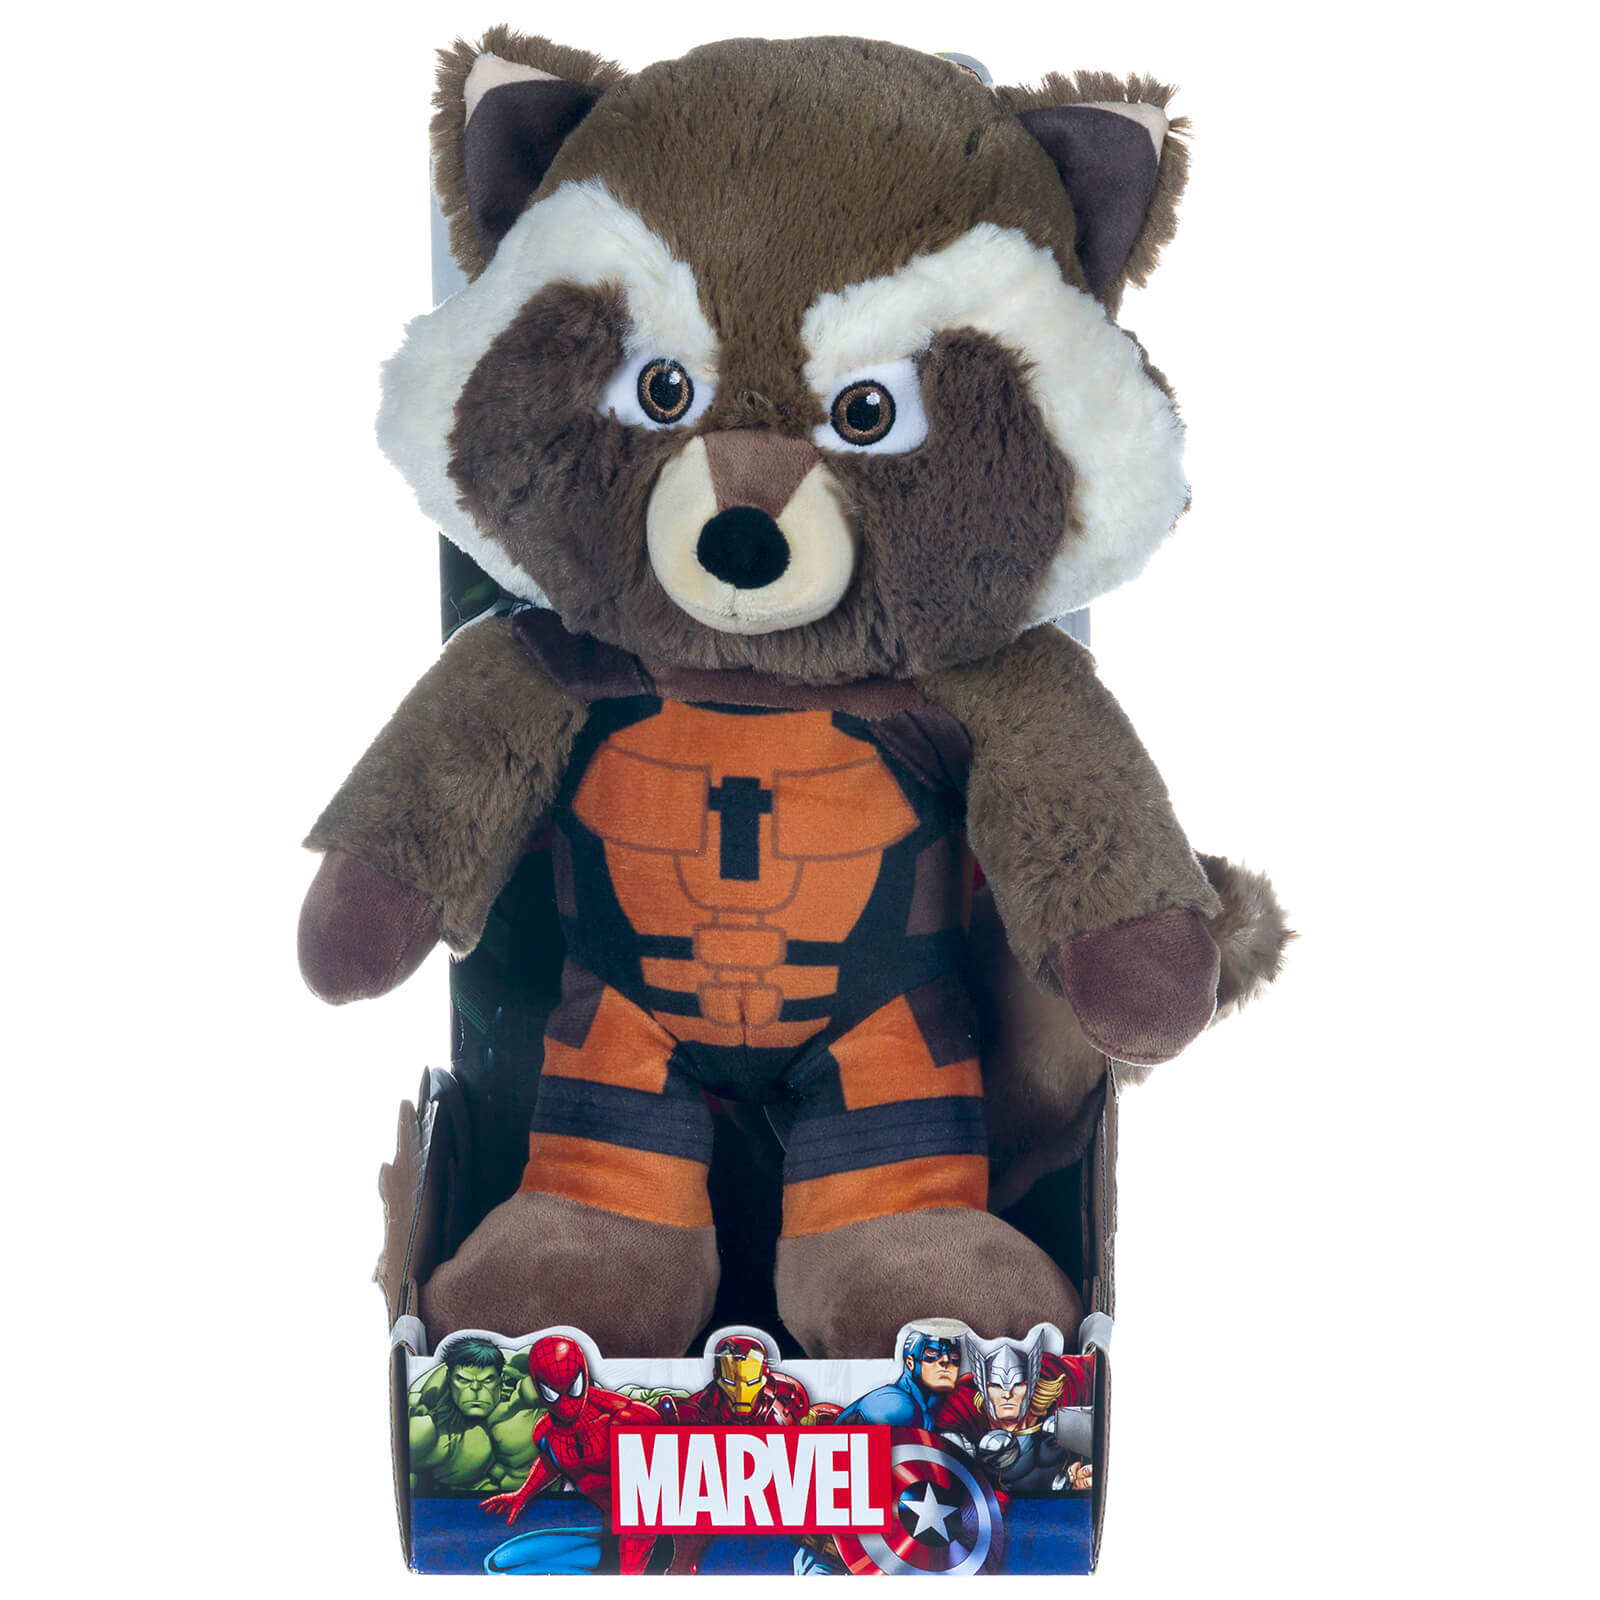 Marvel Avengers Plush Rocket Racoon 10""